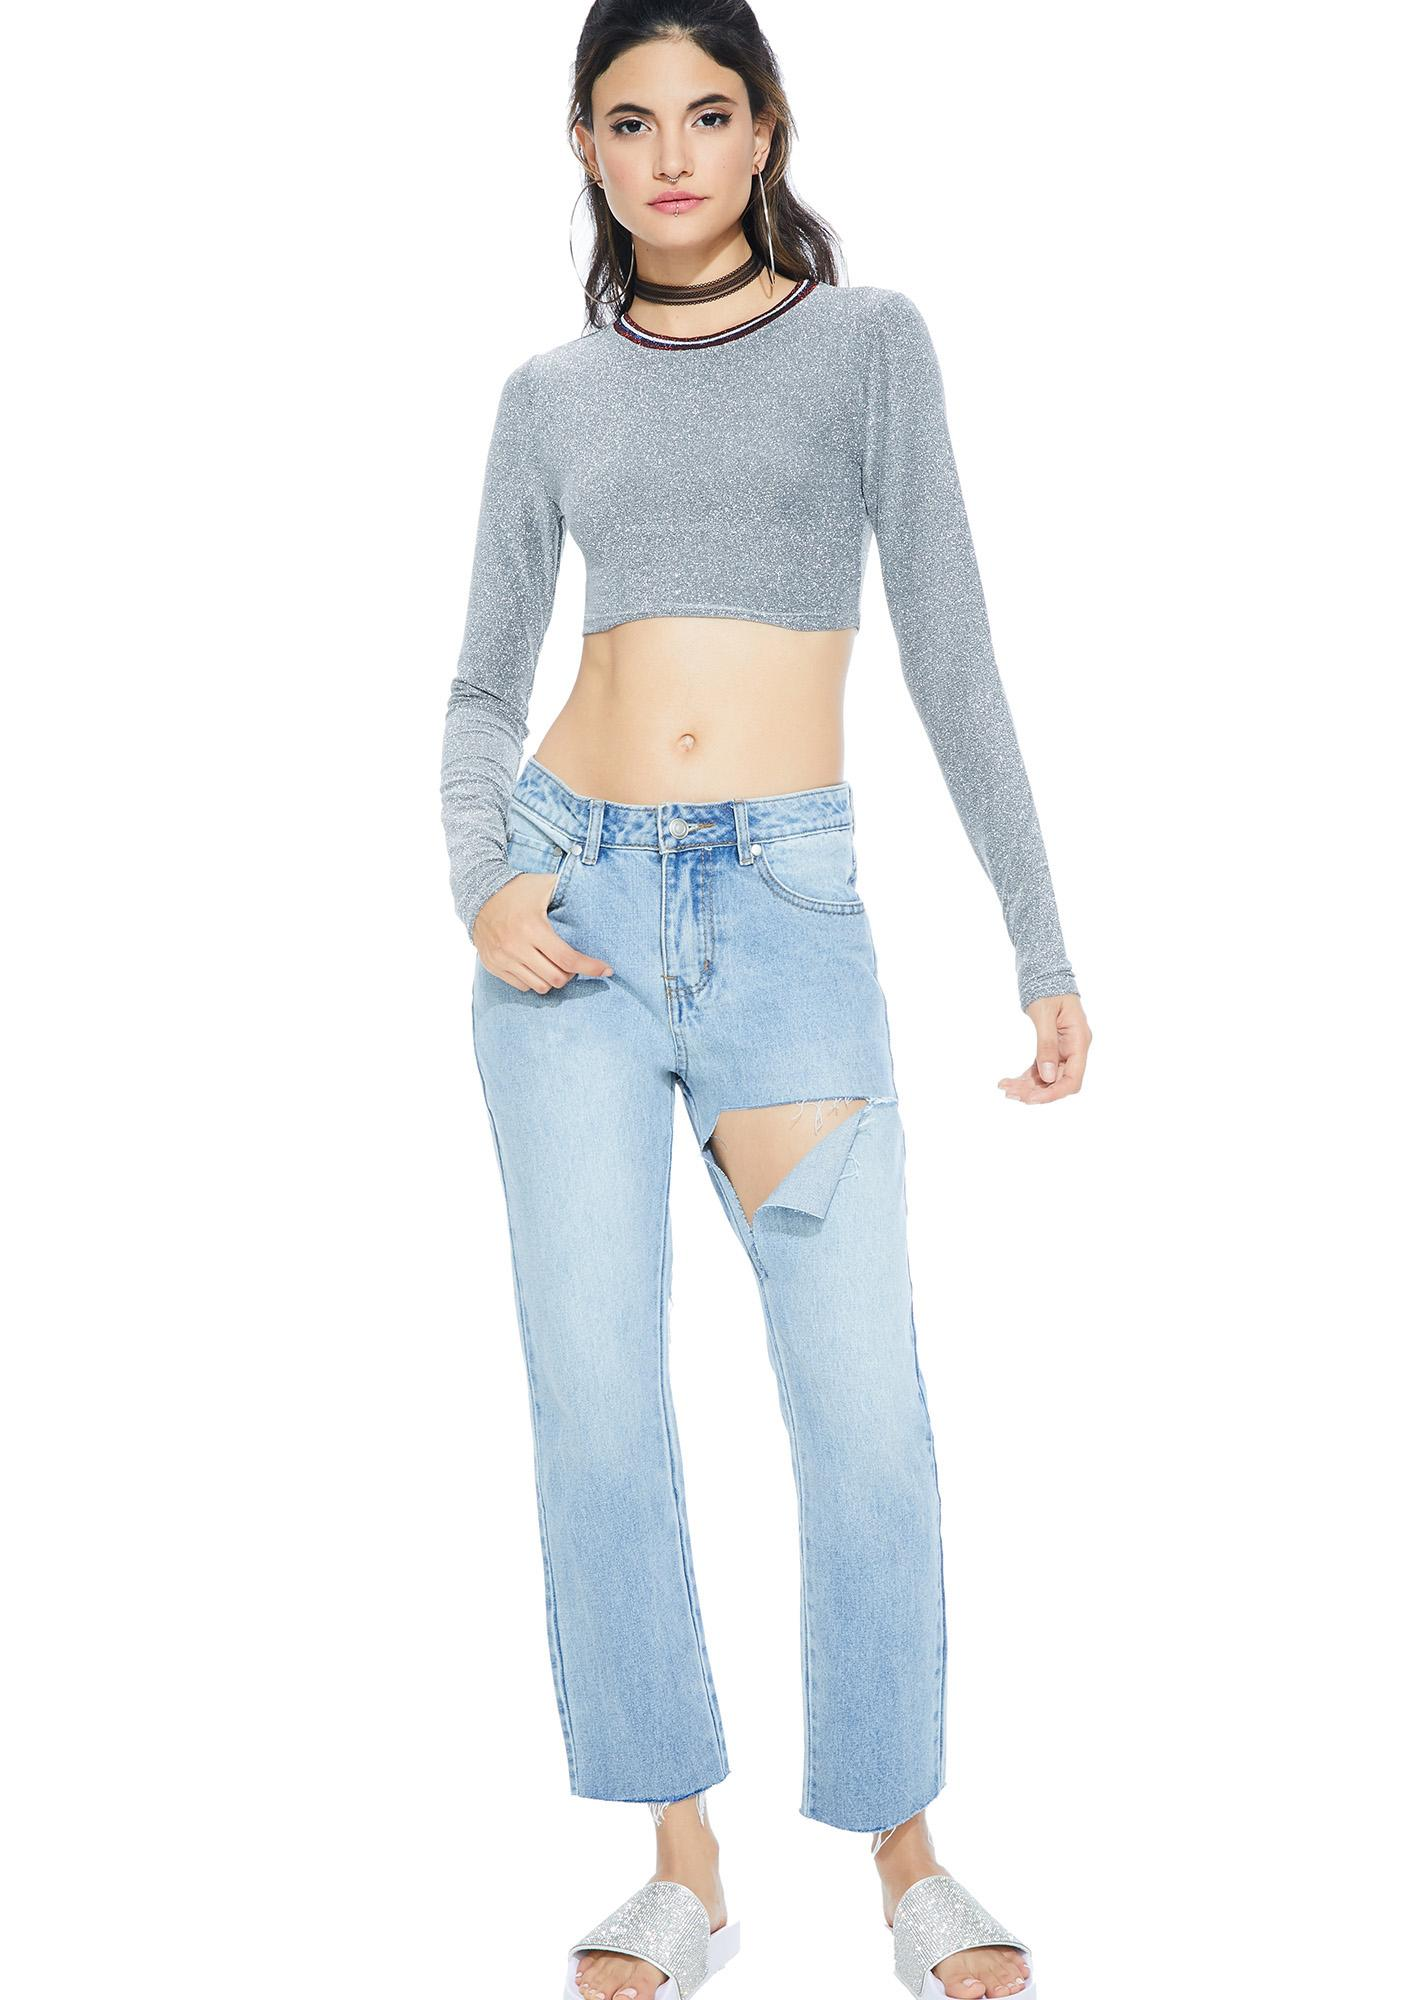 Beaming Sparkle Crop Top